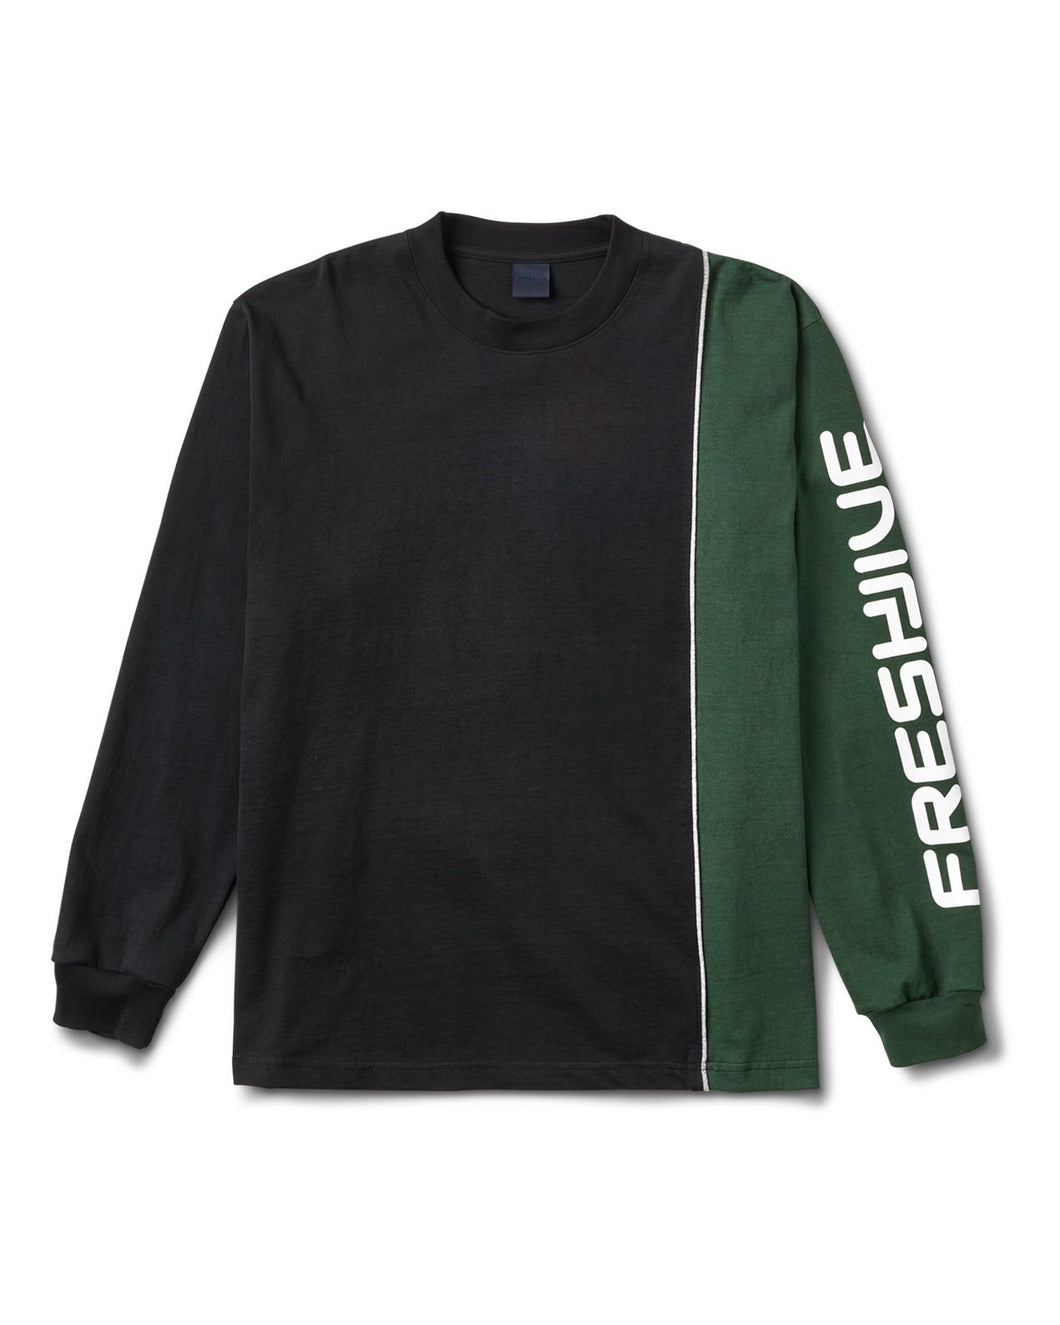 Trackside L/S Tee Black